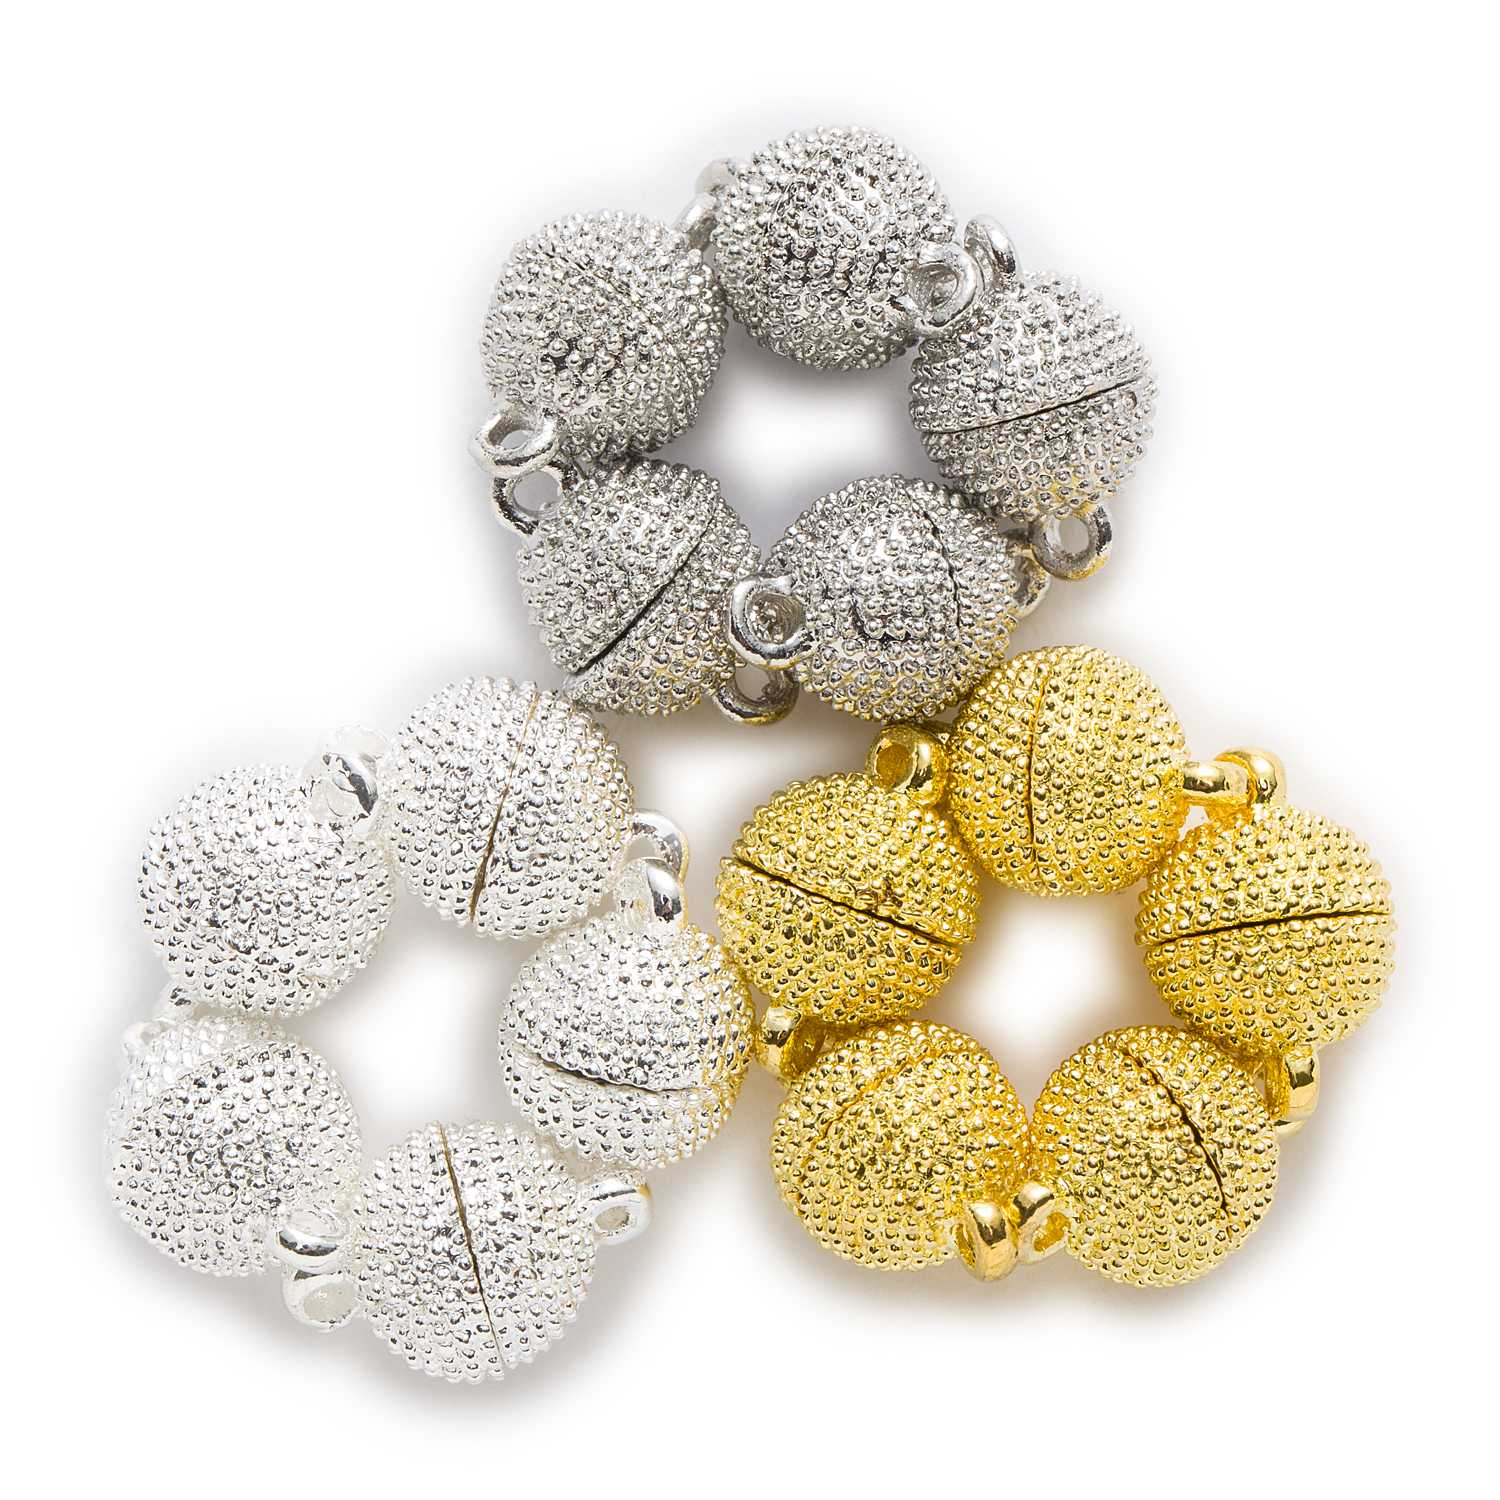 2 Sets Round Polka Dots Carving Magnetic Clasps Findings Jewelry Making Connectors Accessories 8-10mm 10 25yards new arrive 3 8 10mm satin ribbon polka dots printed ribbon with white dots diy hairbow accessories more color